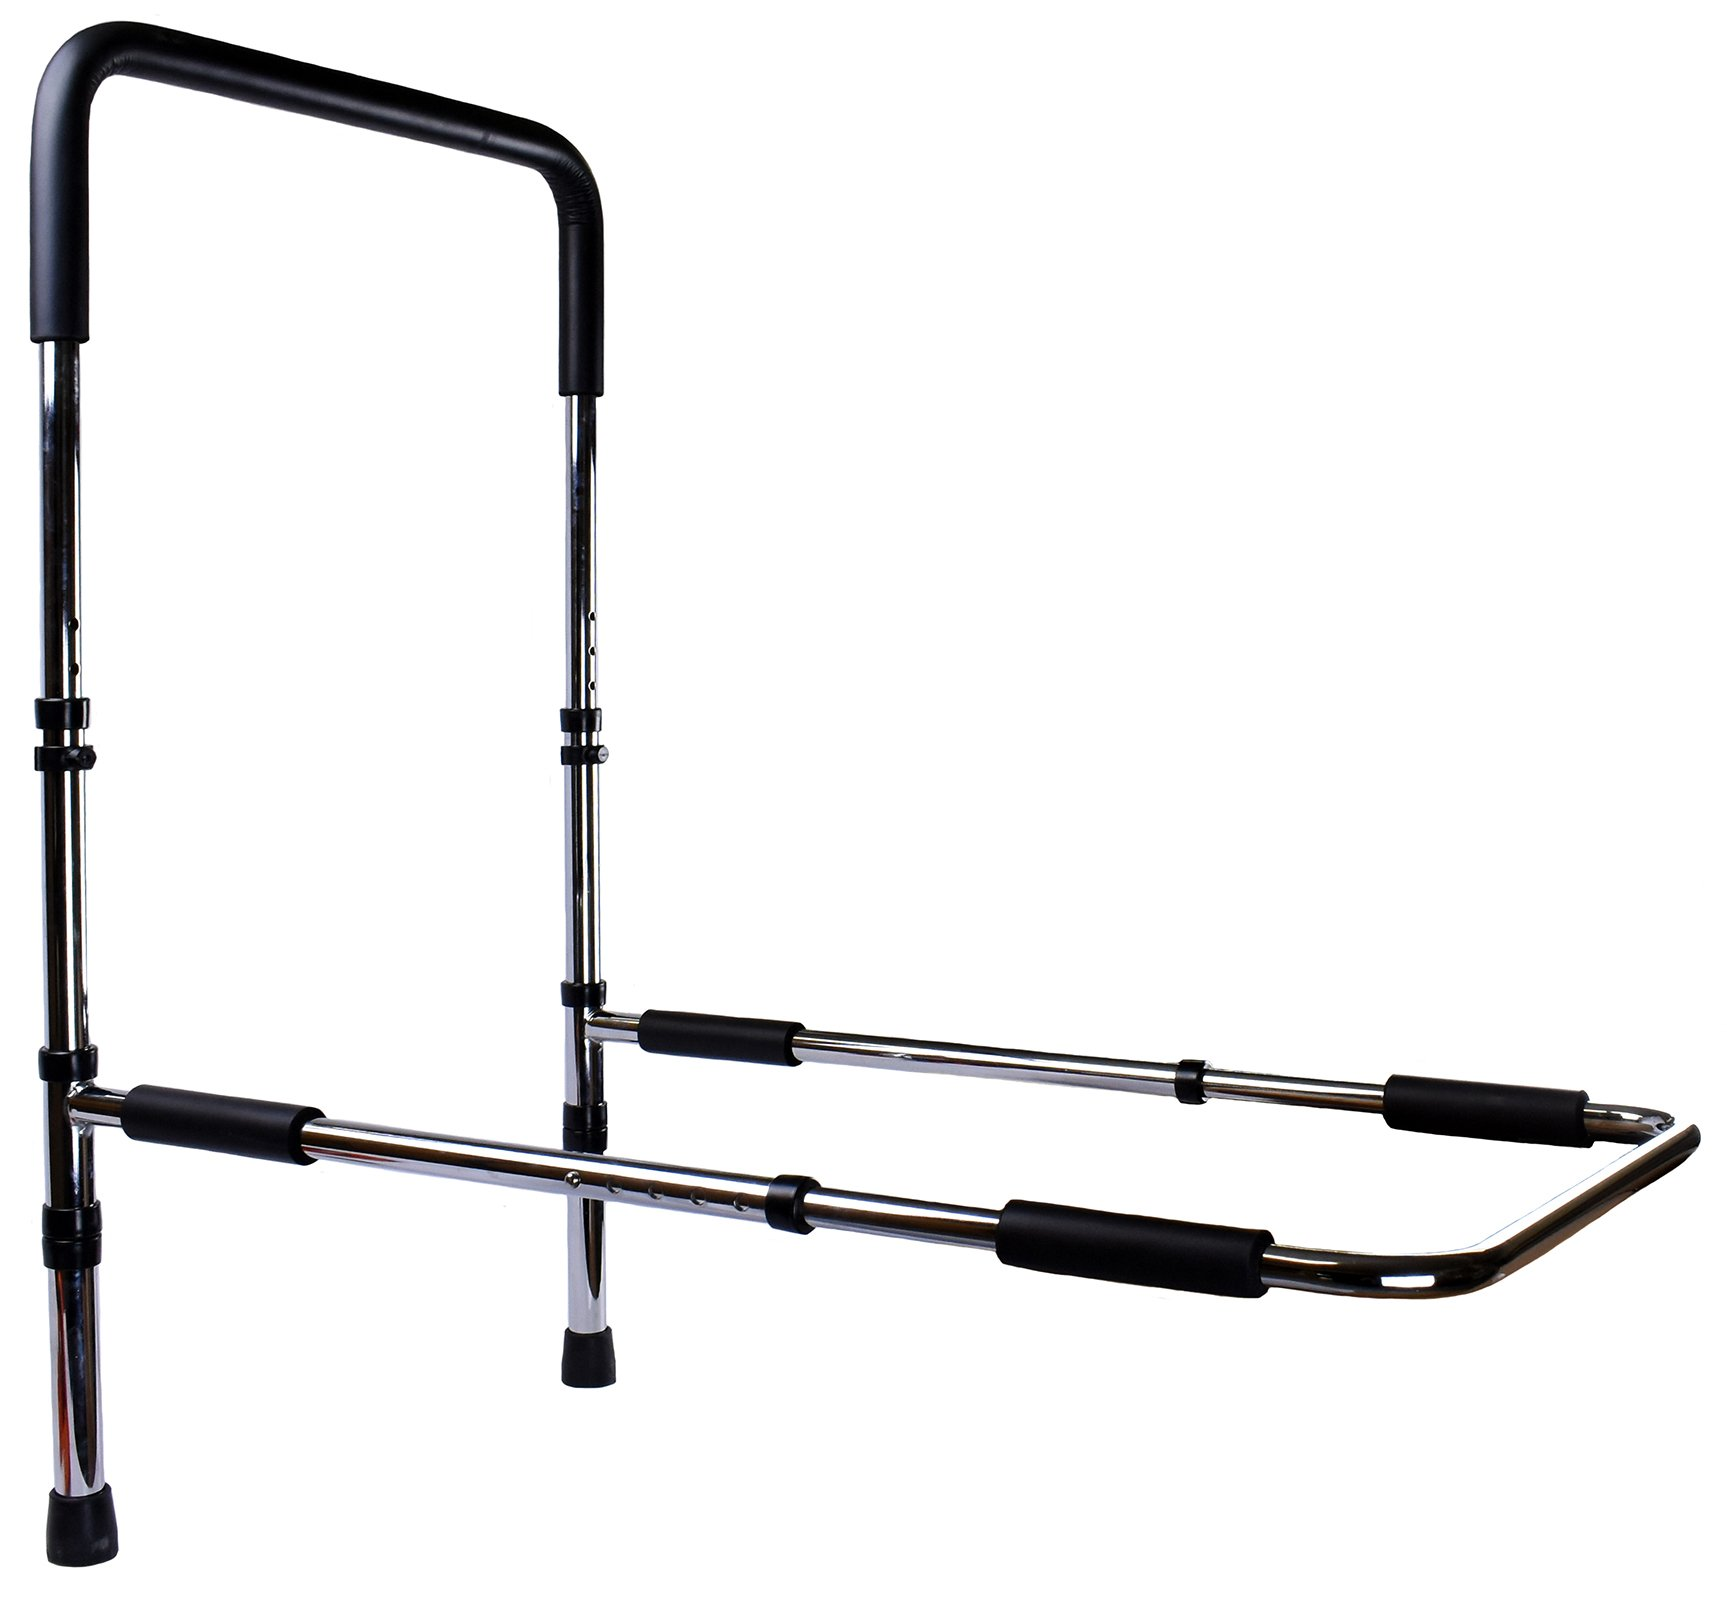 Liberty Bed Assist Rail - The Perfect Fit & Lifetime Warranty by Liberty Medic